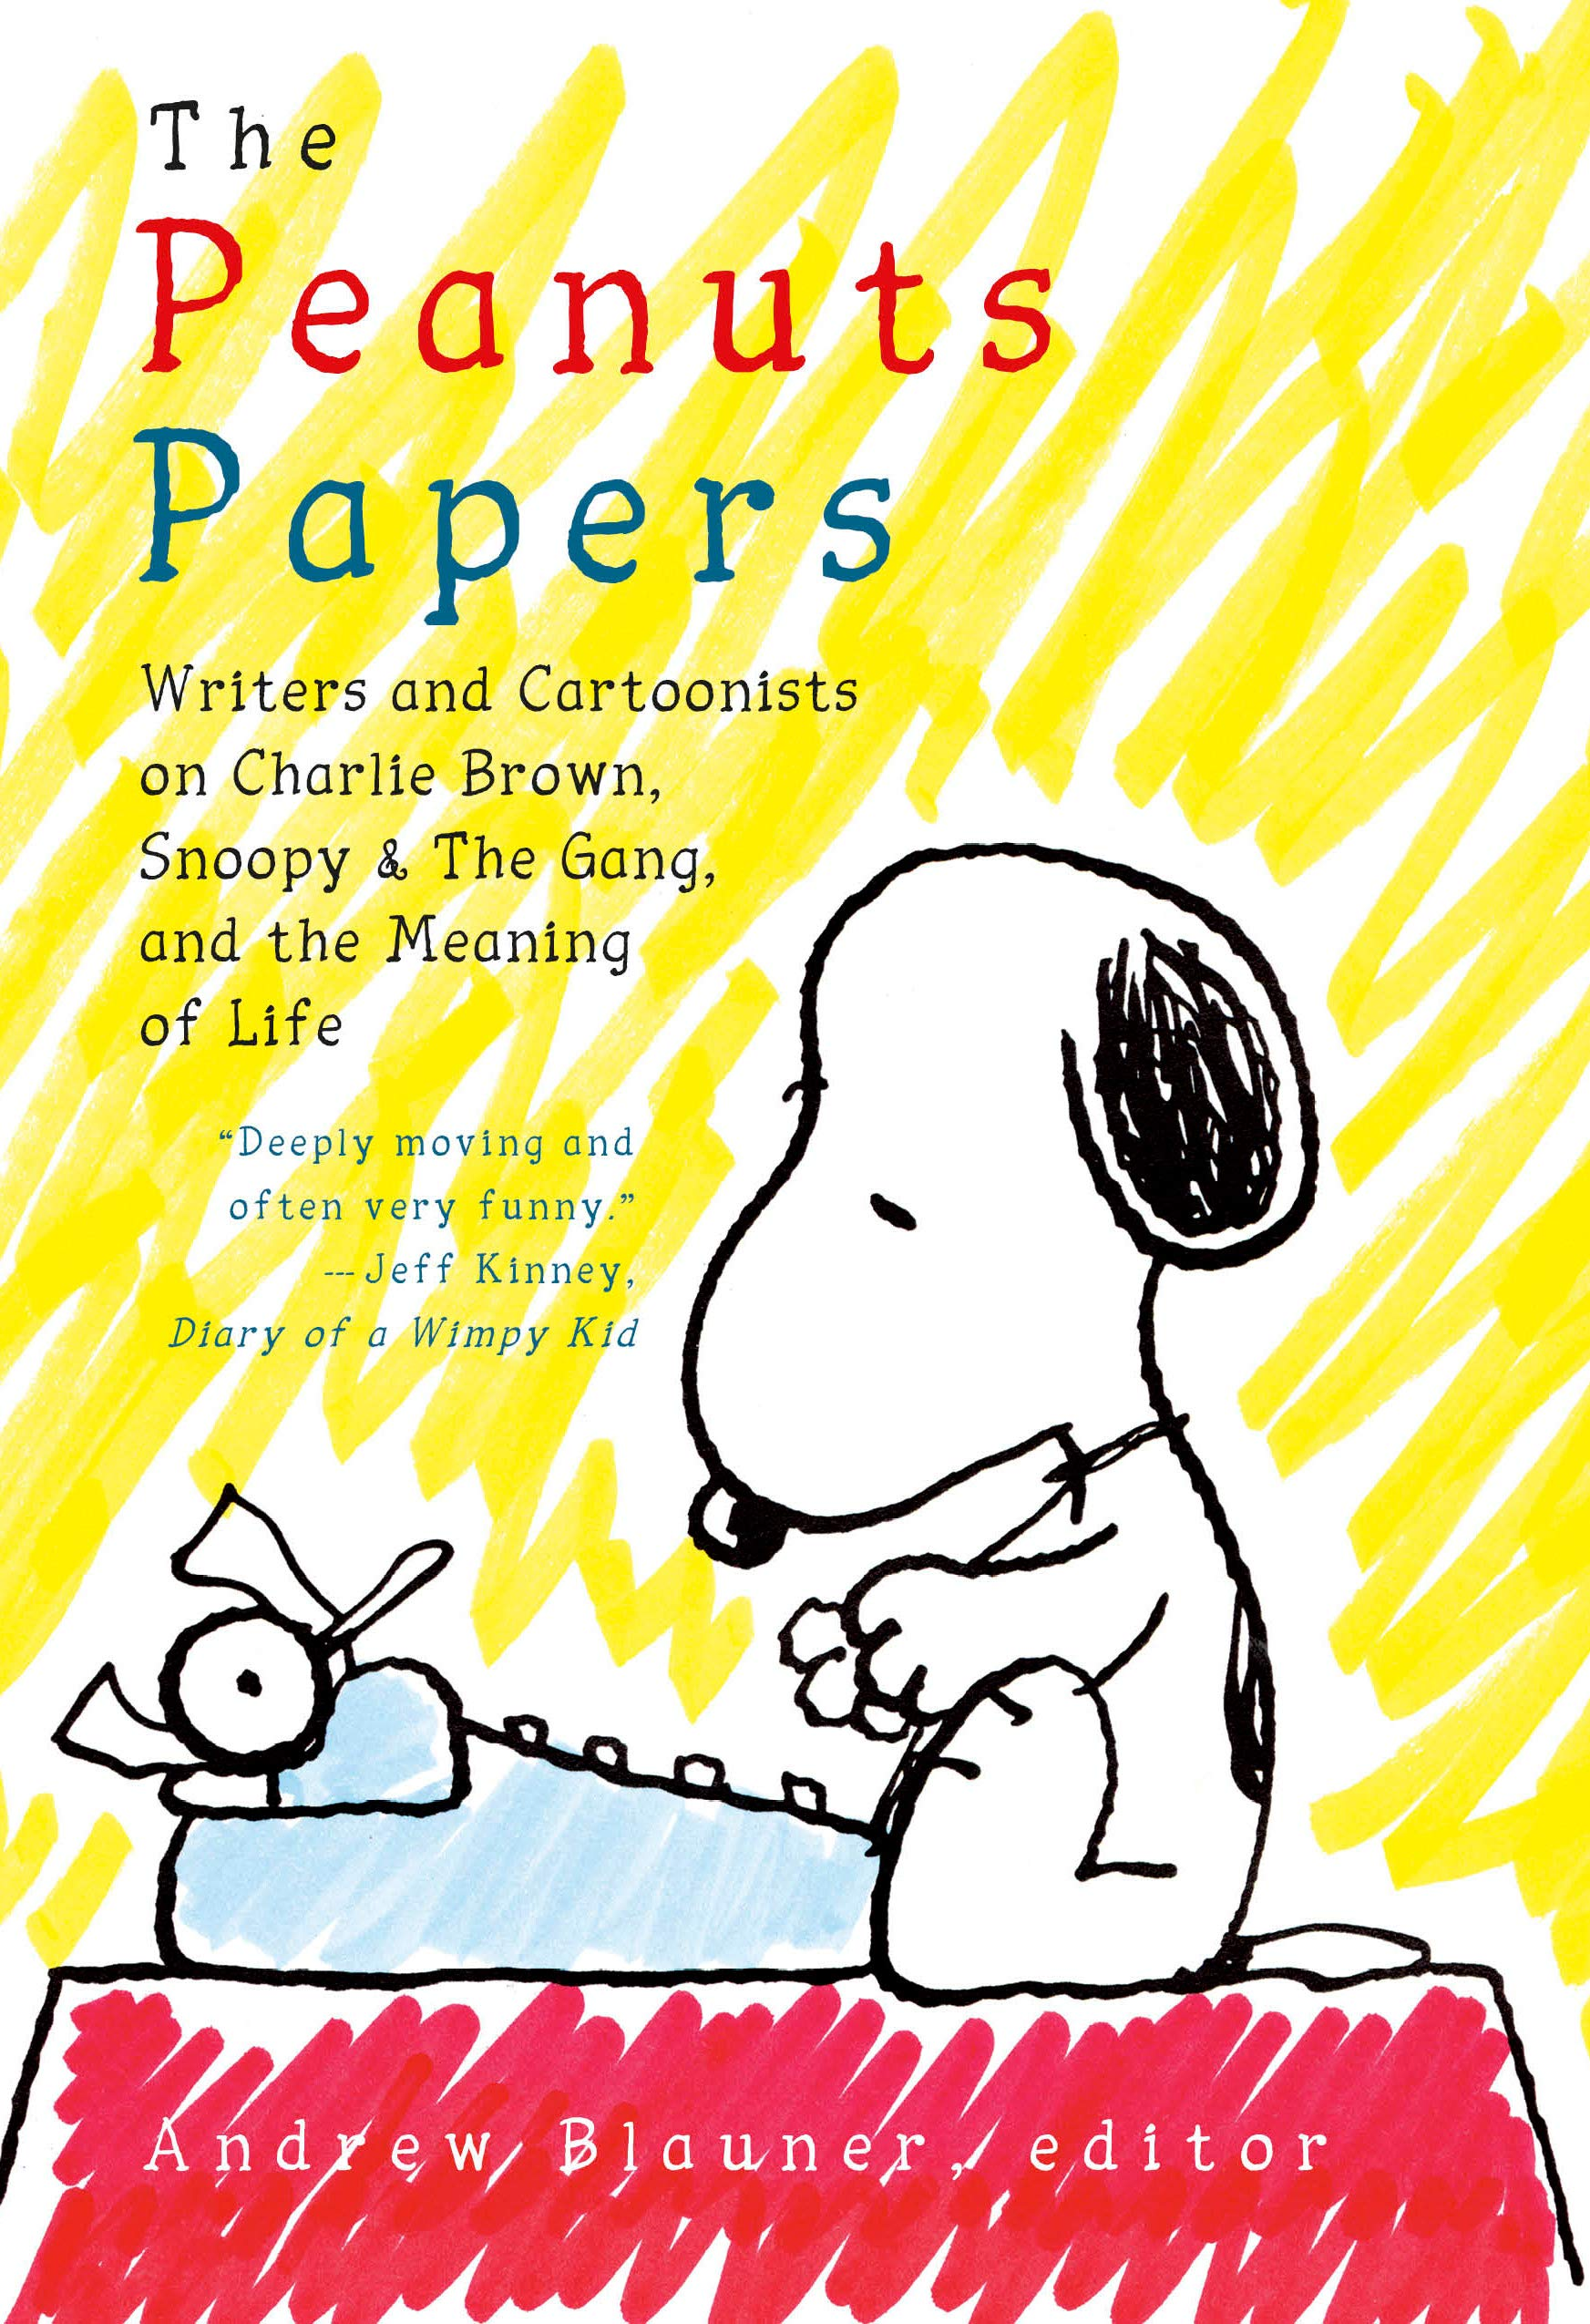 The Peanuts Papers: Charlie Brown, Snoopy & the Gang, and the Meaning of Life